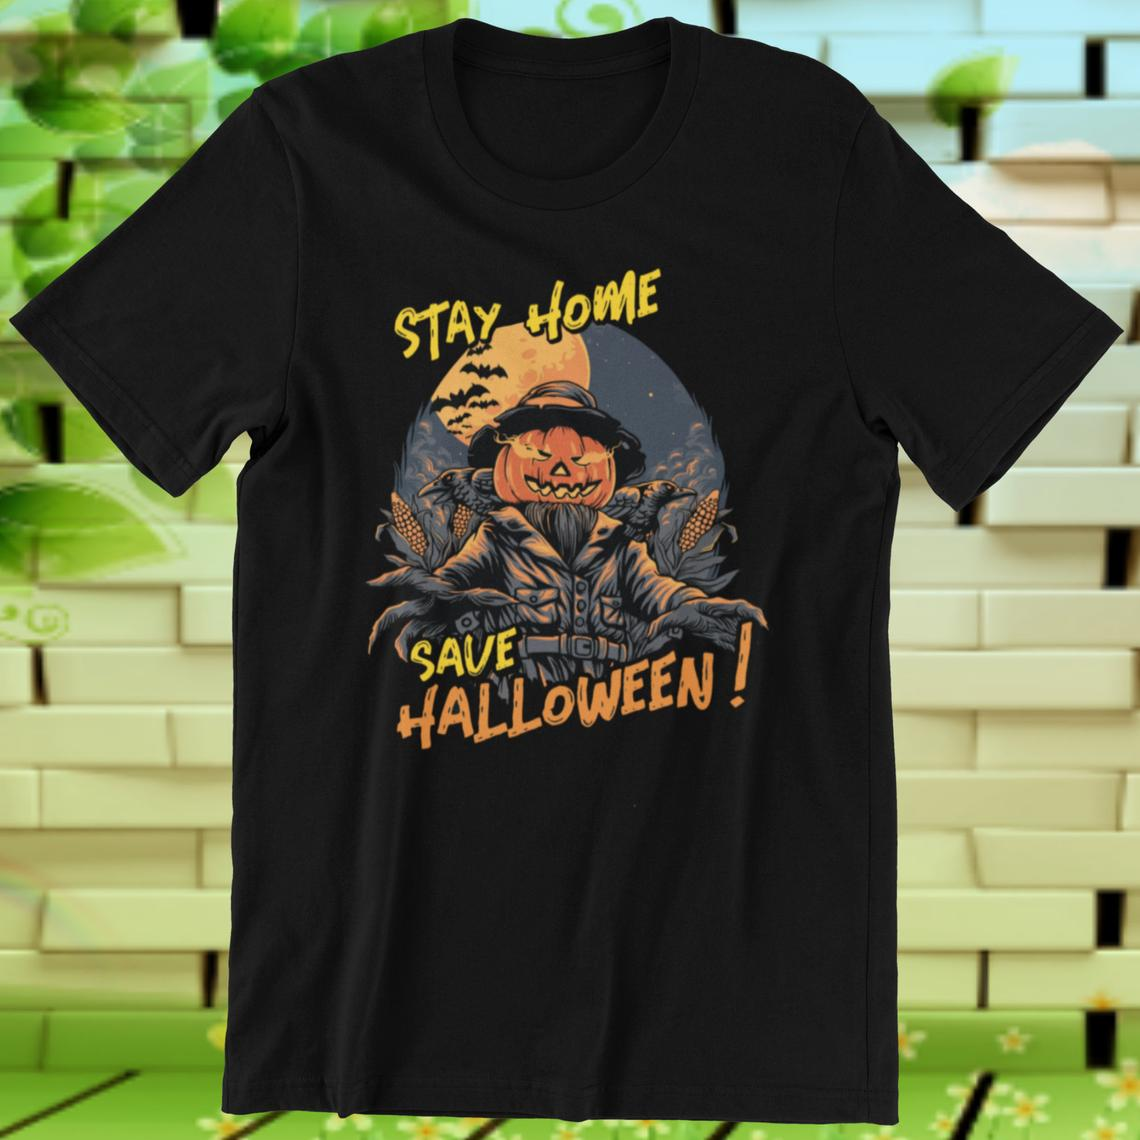 Halloween TShirt Stay Home Save Halloween Social Distancing Funny Quarantine Pumpkin Scarecrow Shirt